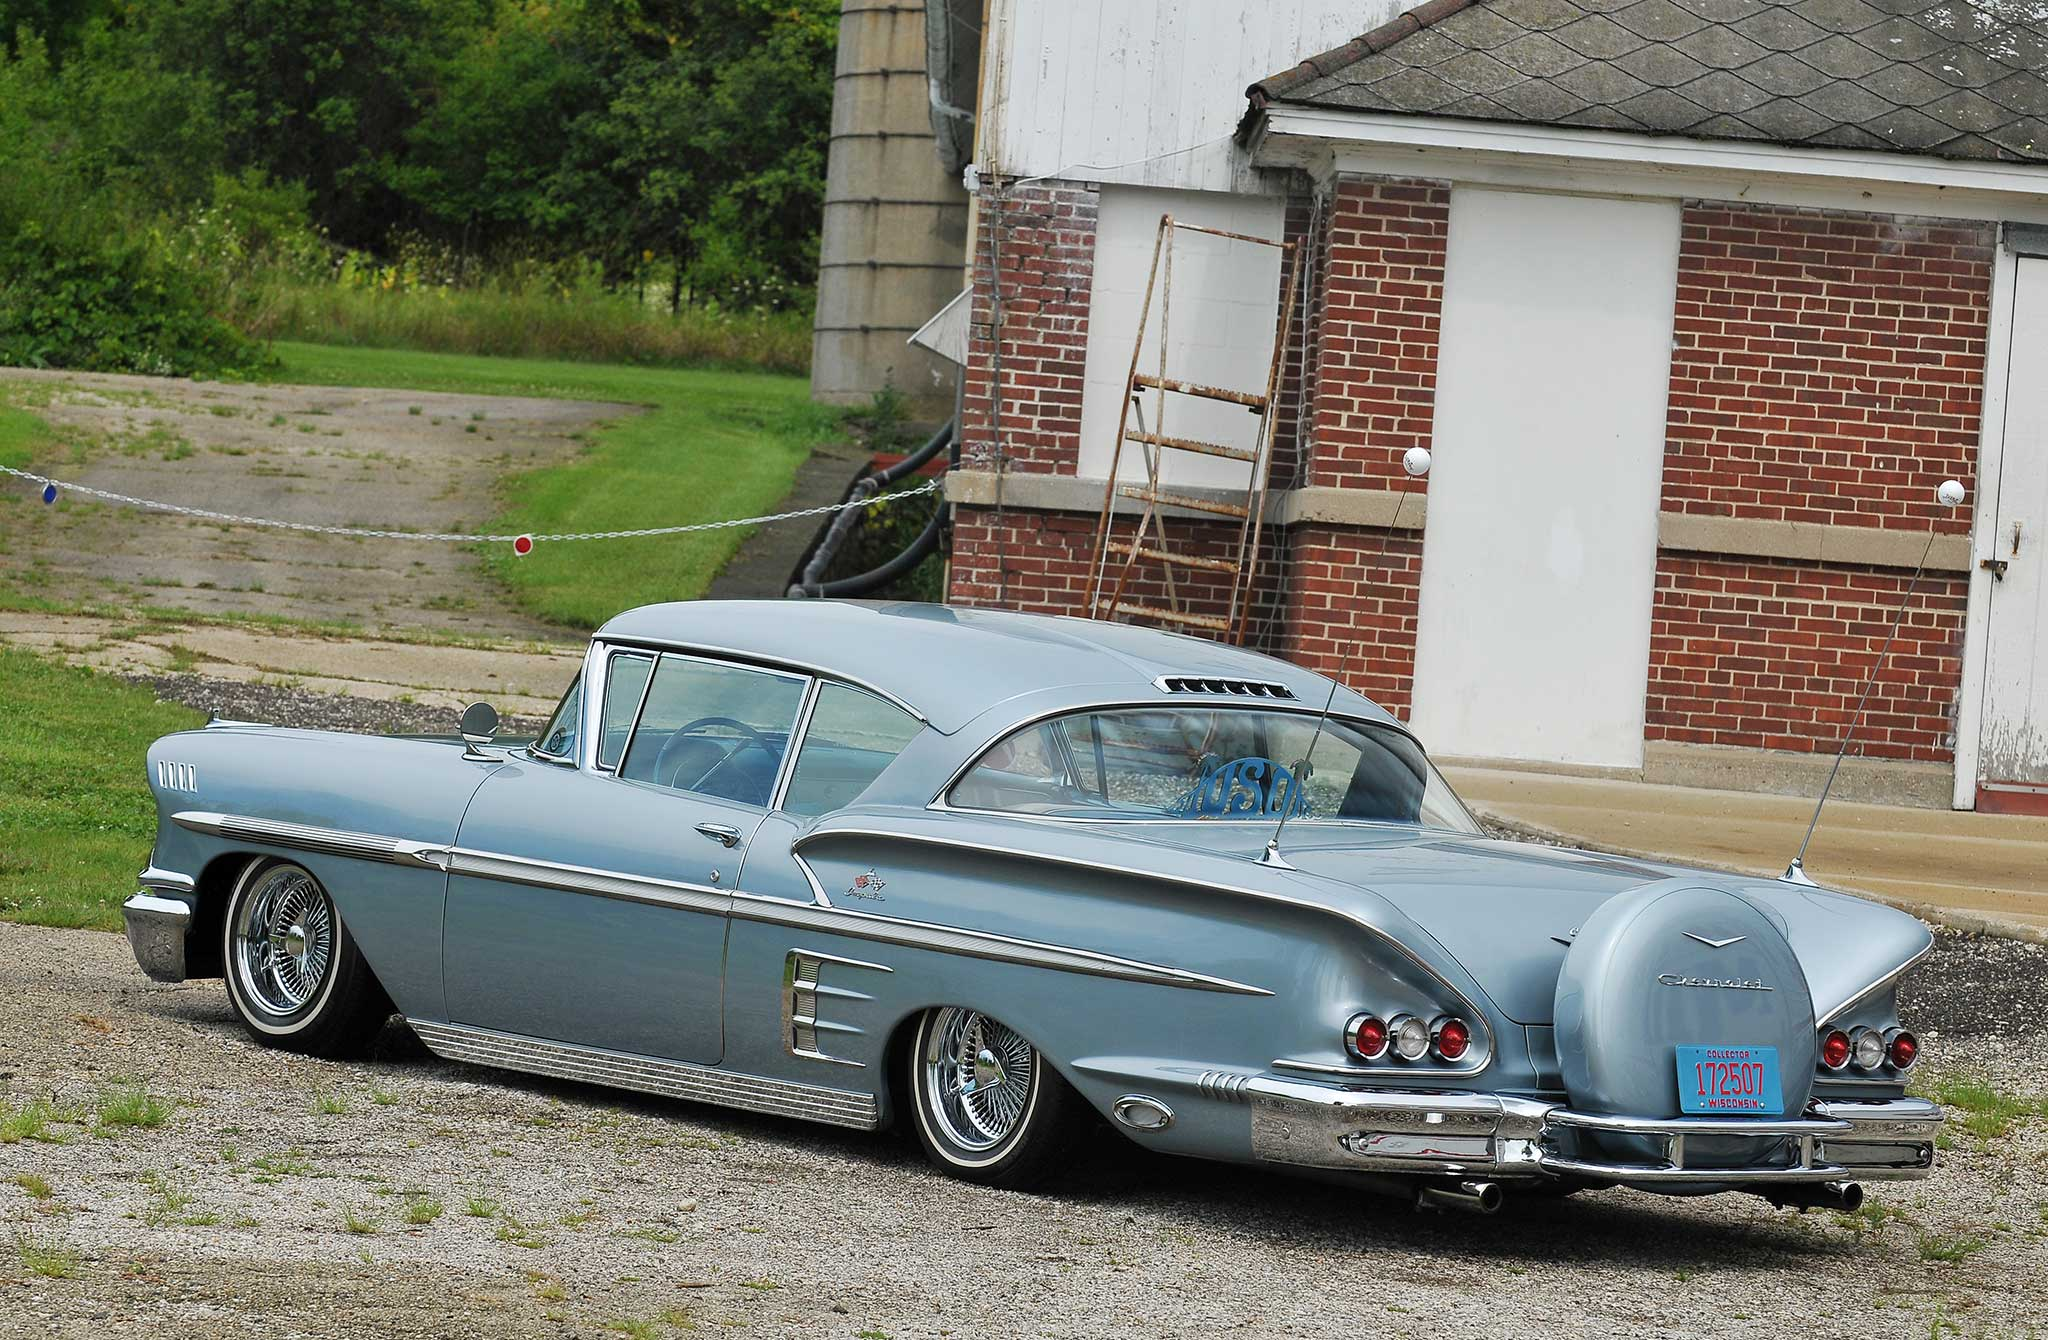 1958 Chevrolet Impala Highway To Heaven Lowrider